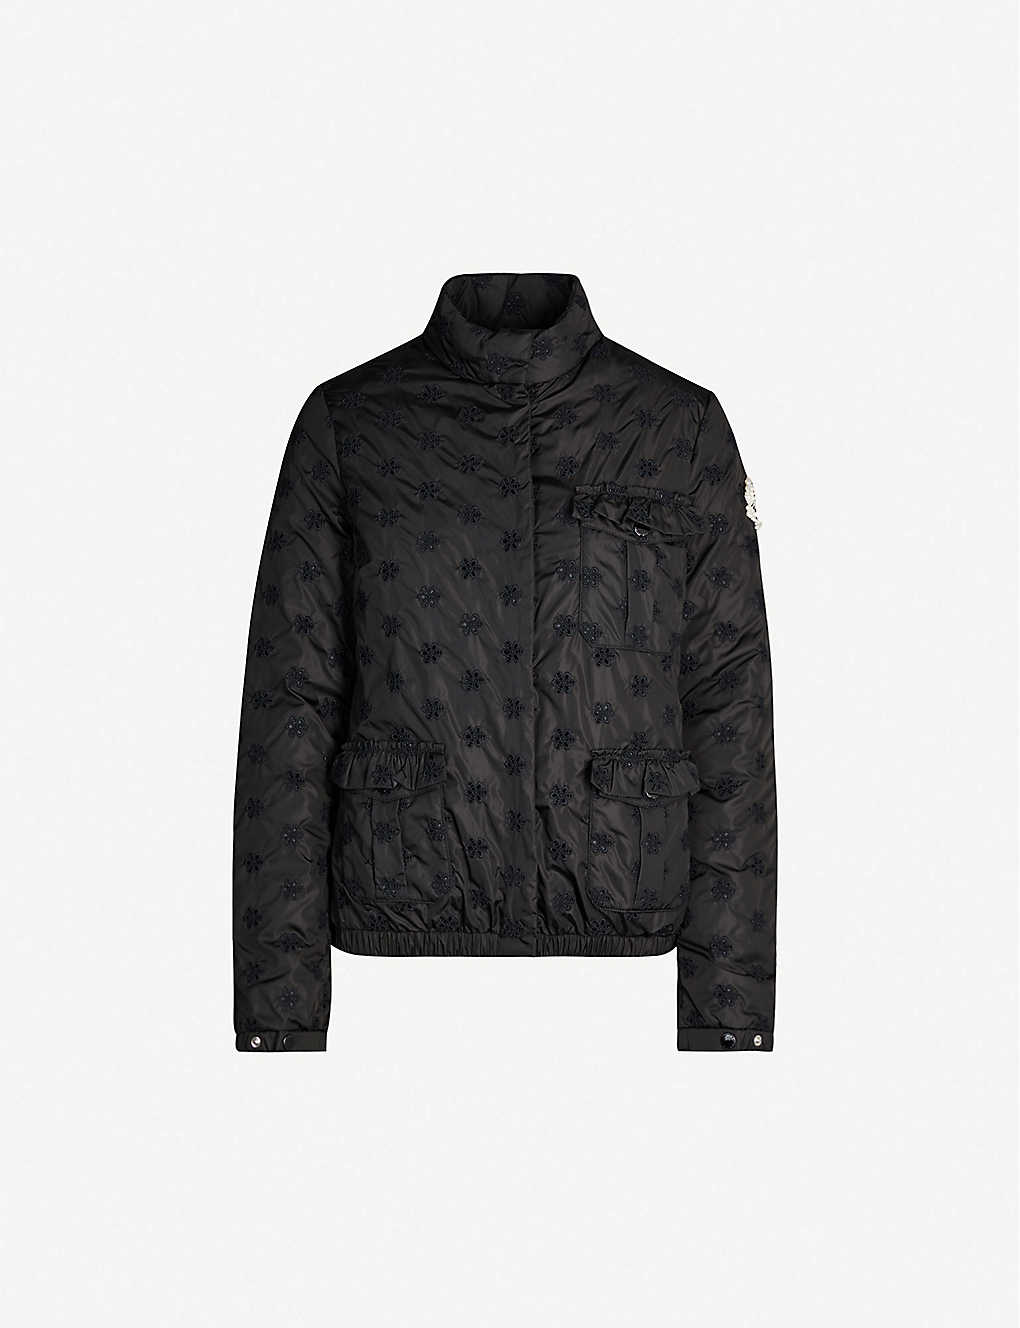 aeb0f366d Moncler Genius x Simone Rocha Hillary embroidered shell jacket